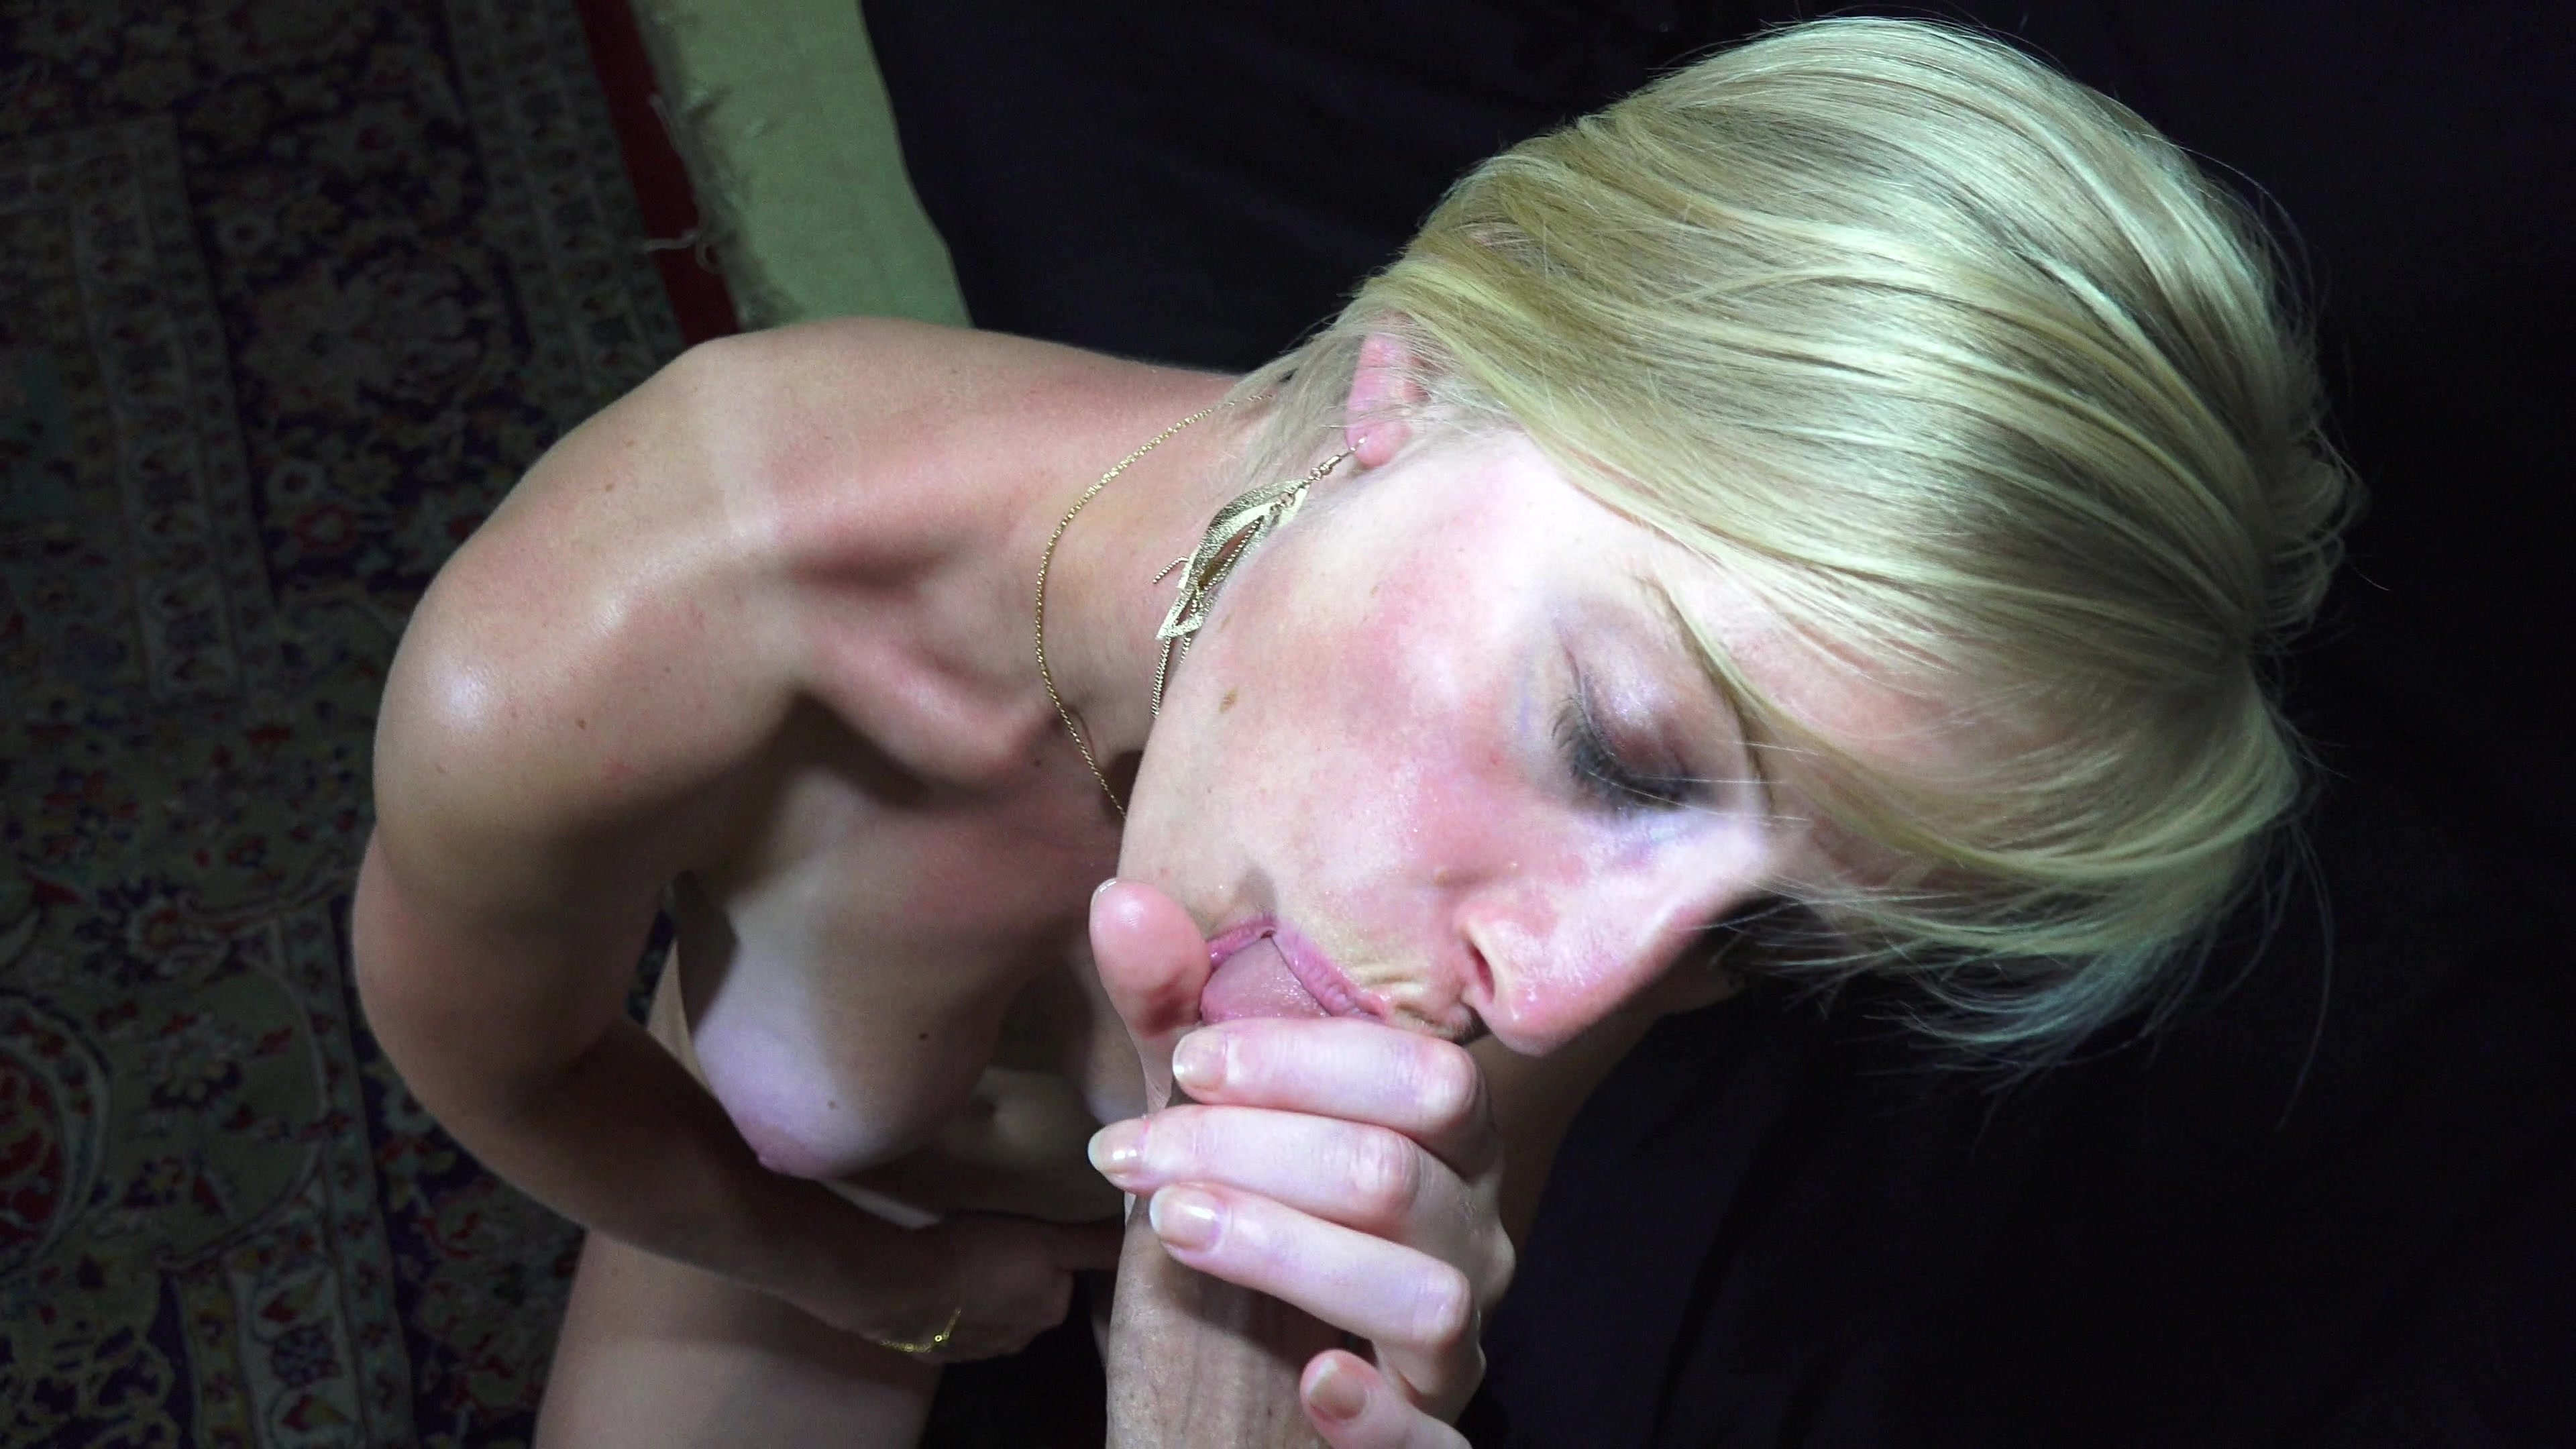 Lusty lady strapon anal penetration